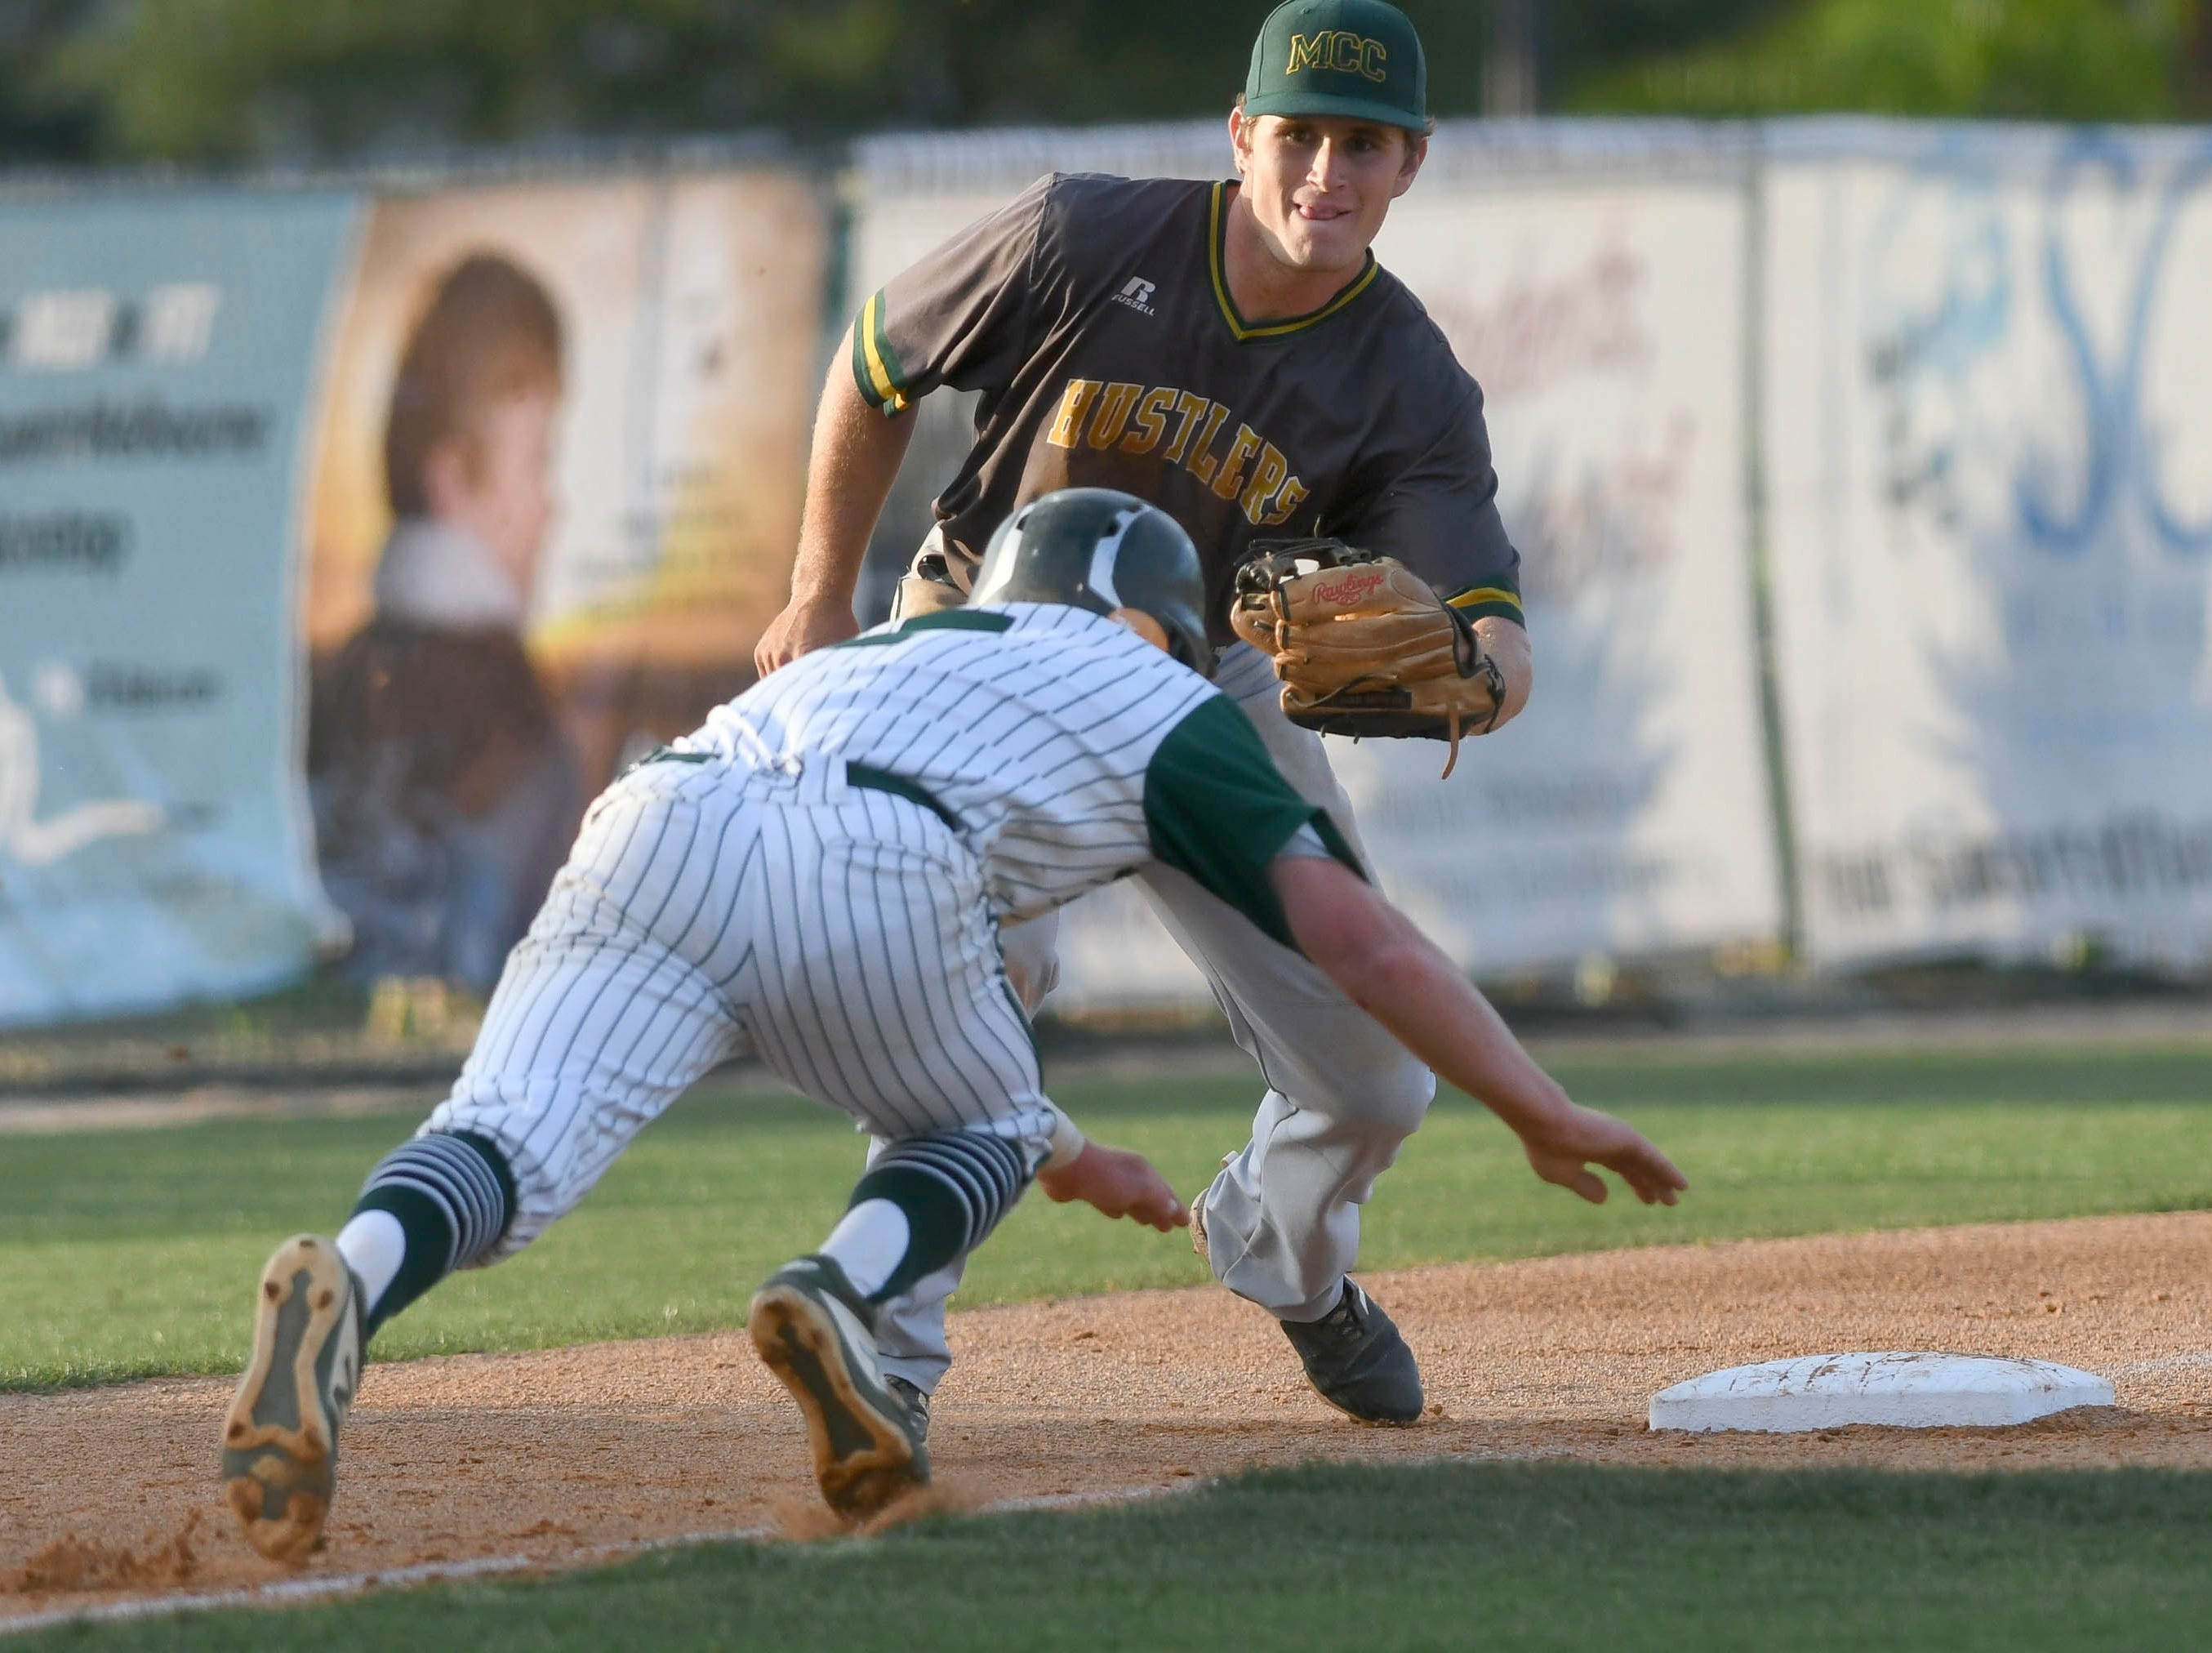 Melbourne Central Catholic third basemanJackson Taylor waits to tag out Melbourne baserunner Jason Blackstone during Wednesday's game.